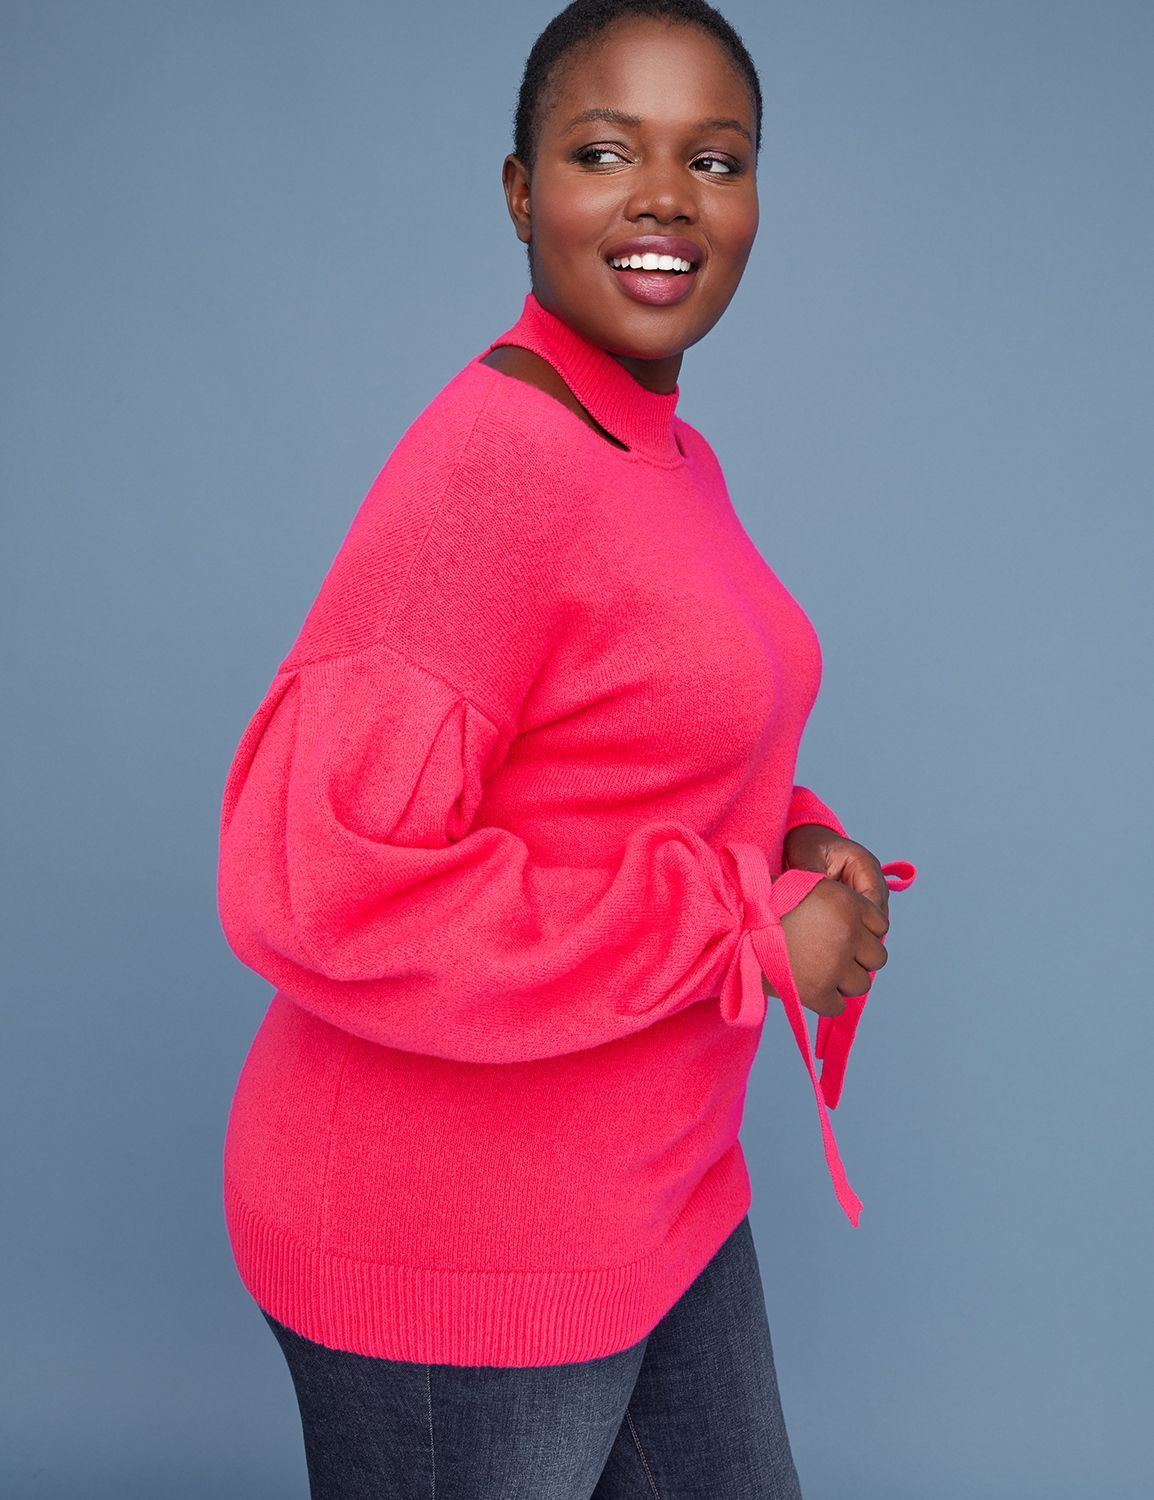 Lane Bryant Plus Size Cold Weather Fashion Finds- Cutout Mock-Neck Sweater With Tie Cuffs